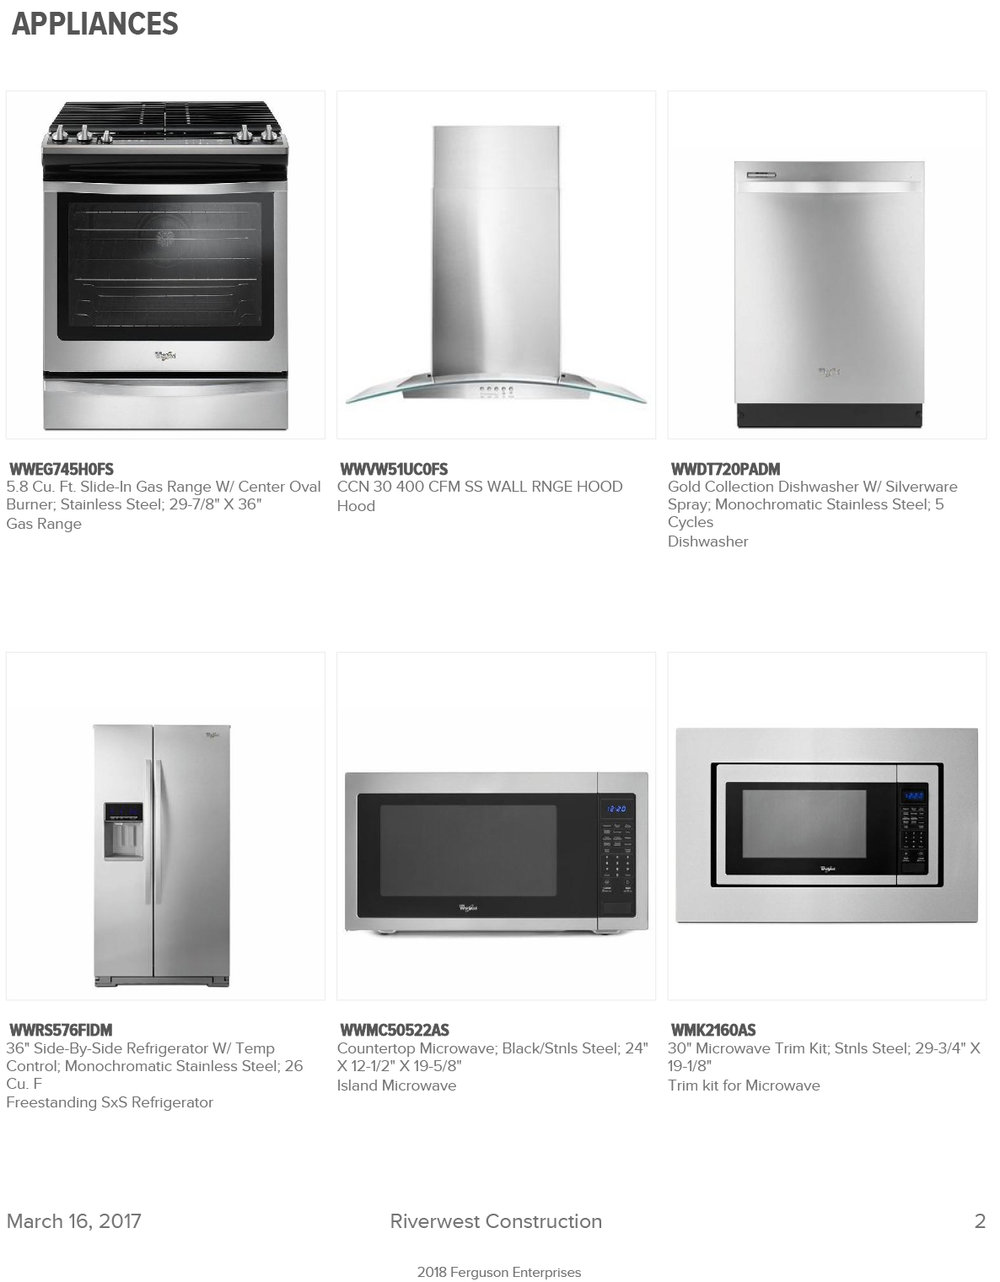 Whirlpool (shown here) is our standard appliance option. But we also offer Bosch and GE Profile as an upgrade.